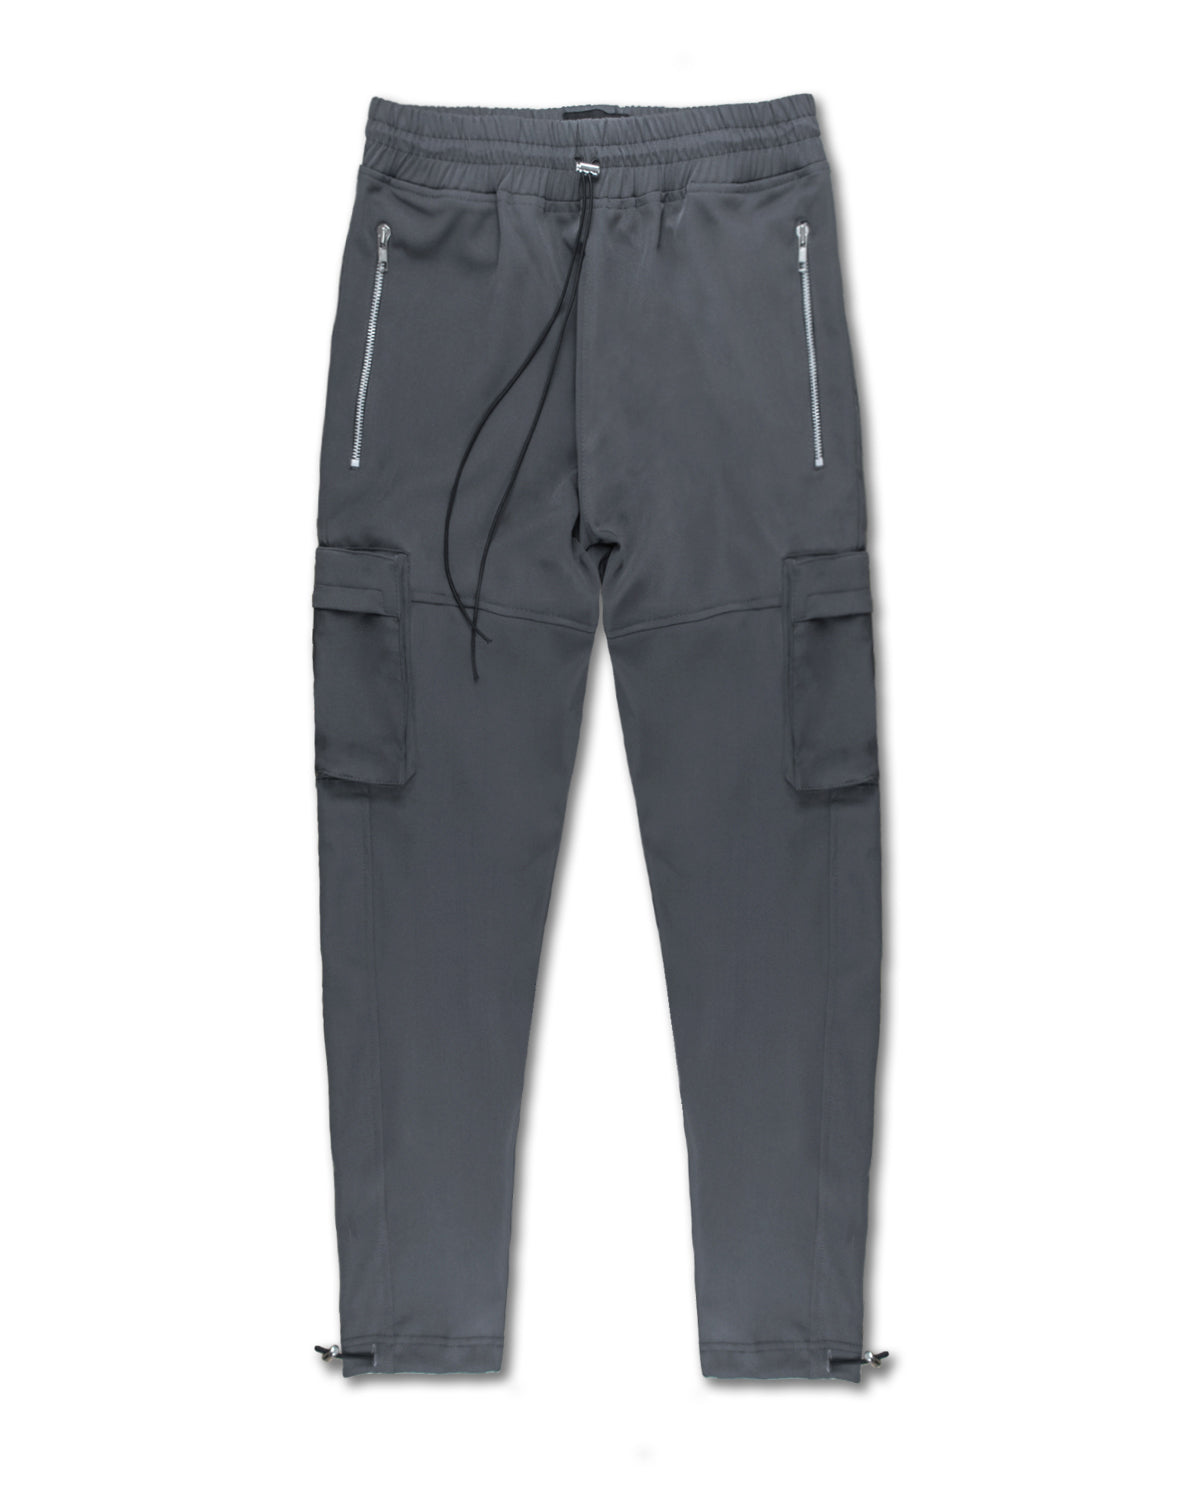 Nomad Puller Pants - Shark Grey